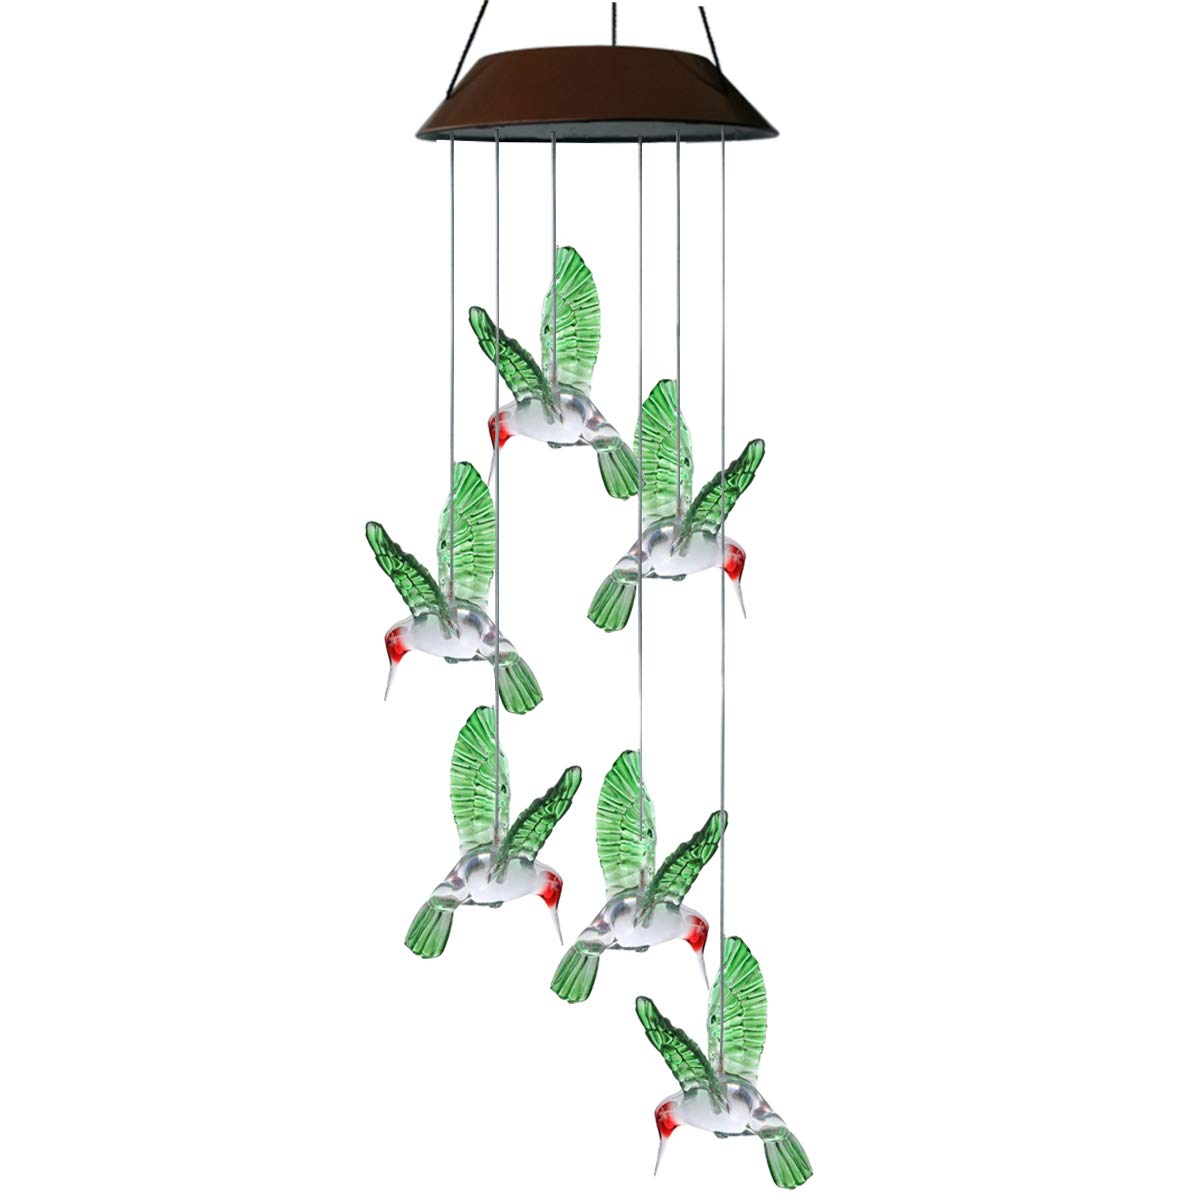 Topspeeder Wind Chimes,Color-Changing Hummingbird Wind Chime Solar LED Six Hummingbird Mobile,Solar Energy and USB Charger, 2 Ways Power Waterproof for Party Night,Garden,Outdoor,Home Decoration etc